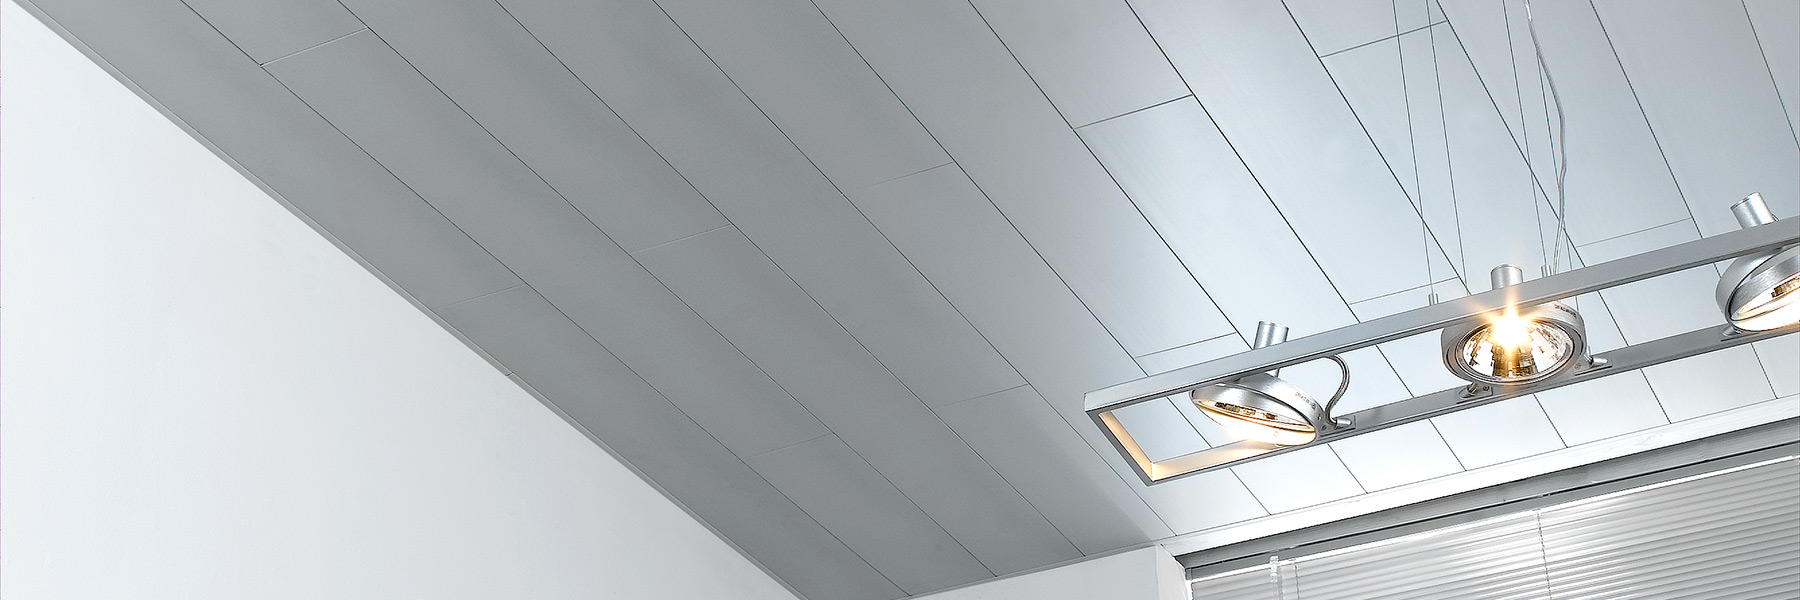 Decorative Pvc Ceiling Panels Plastic Ceilings Cladding Dumaplast